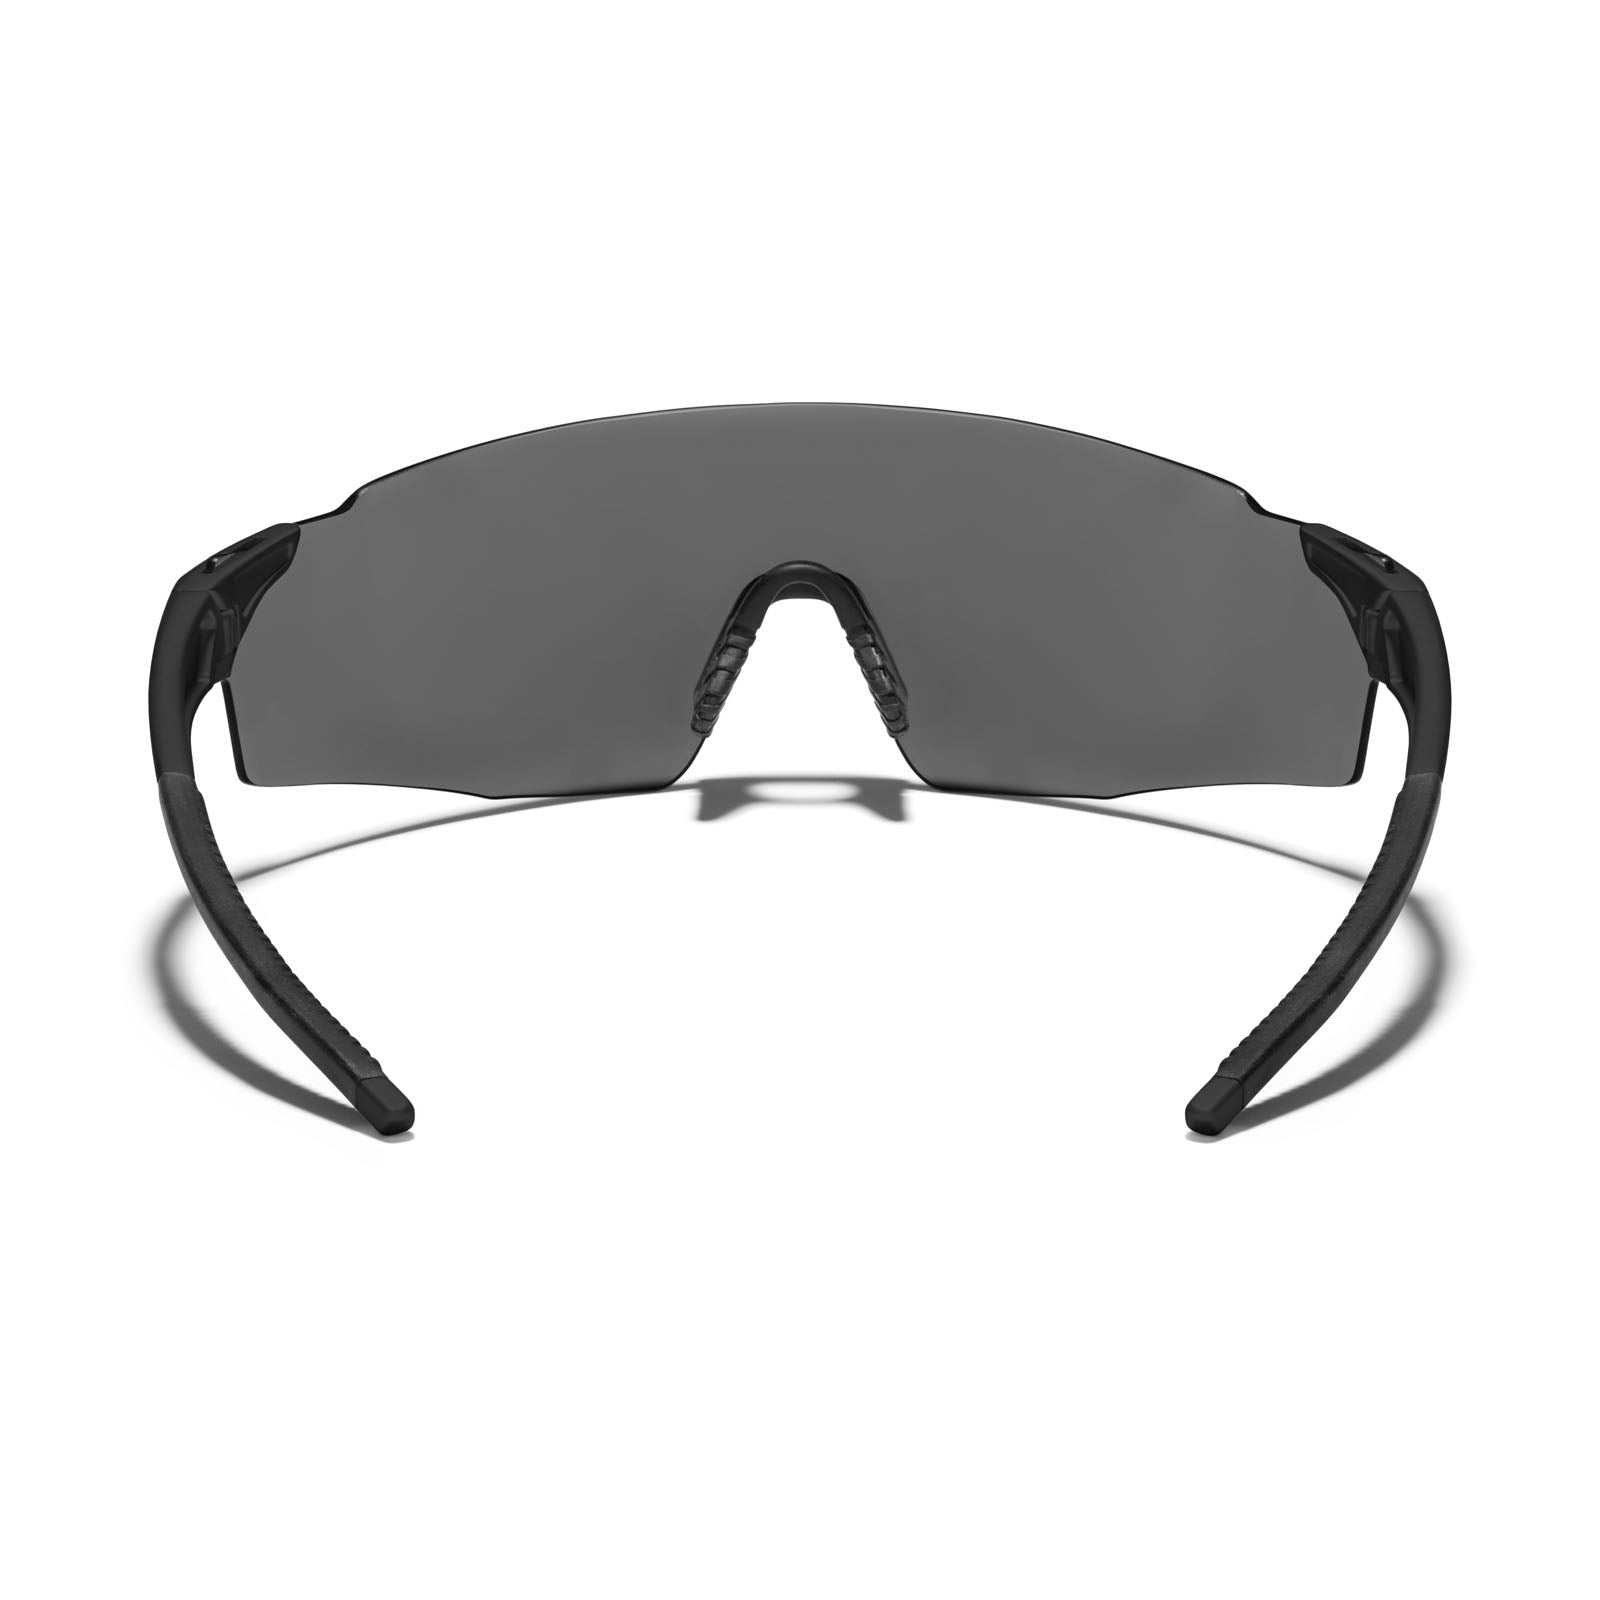 SL-1 Sports Shield Sunglasses - Road Cycling Sunglasses | ROKA